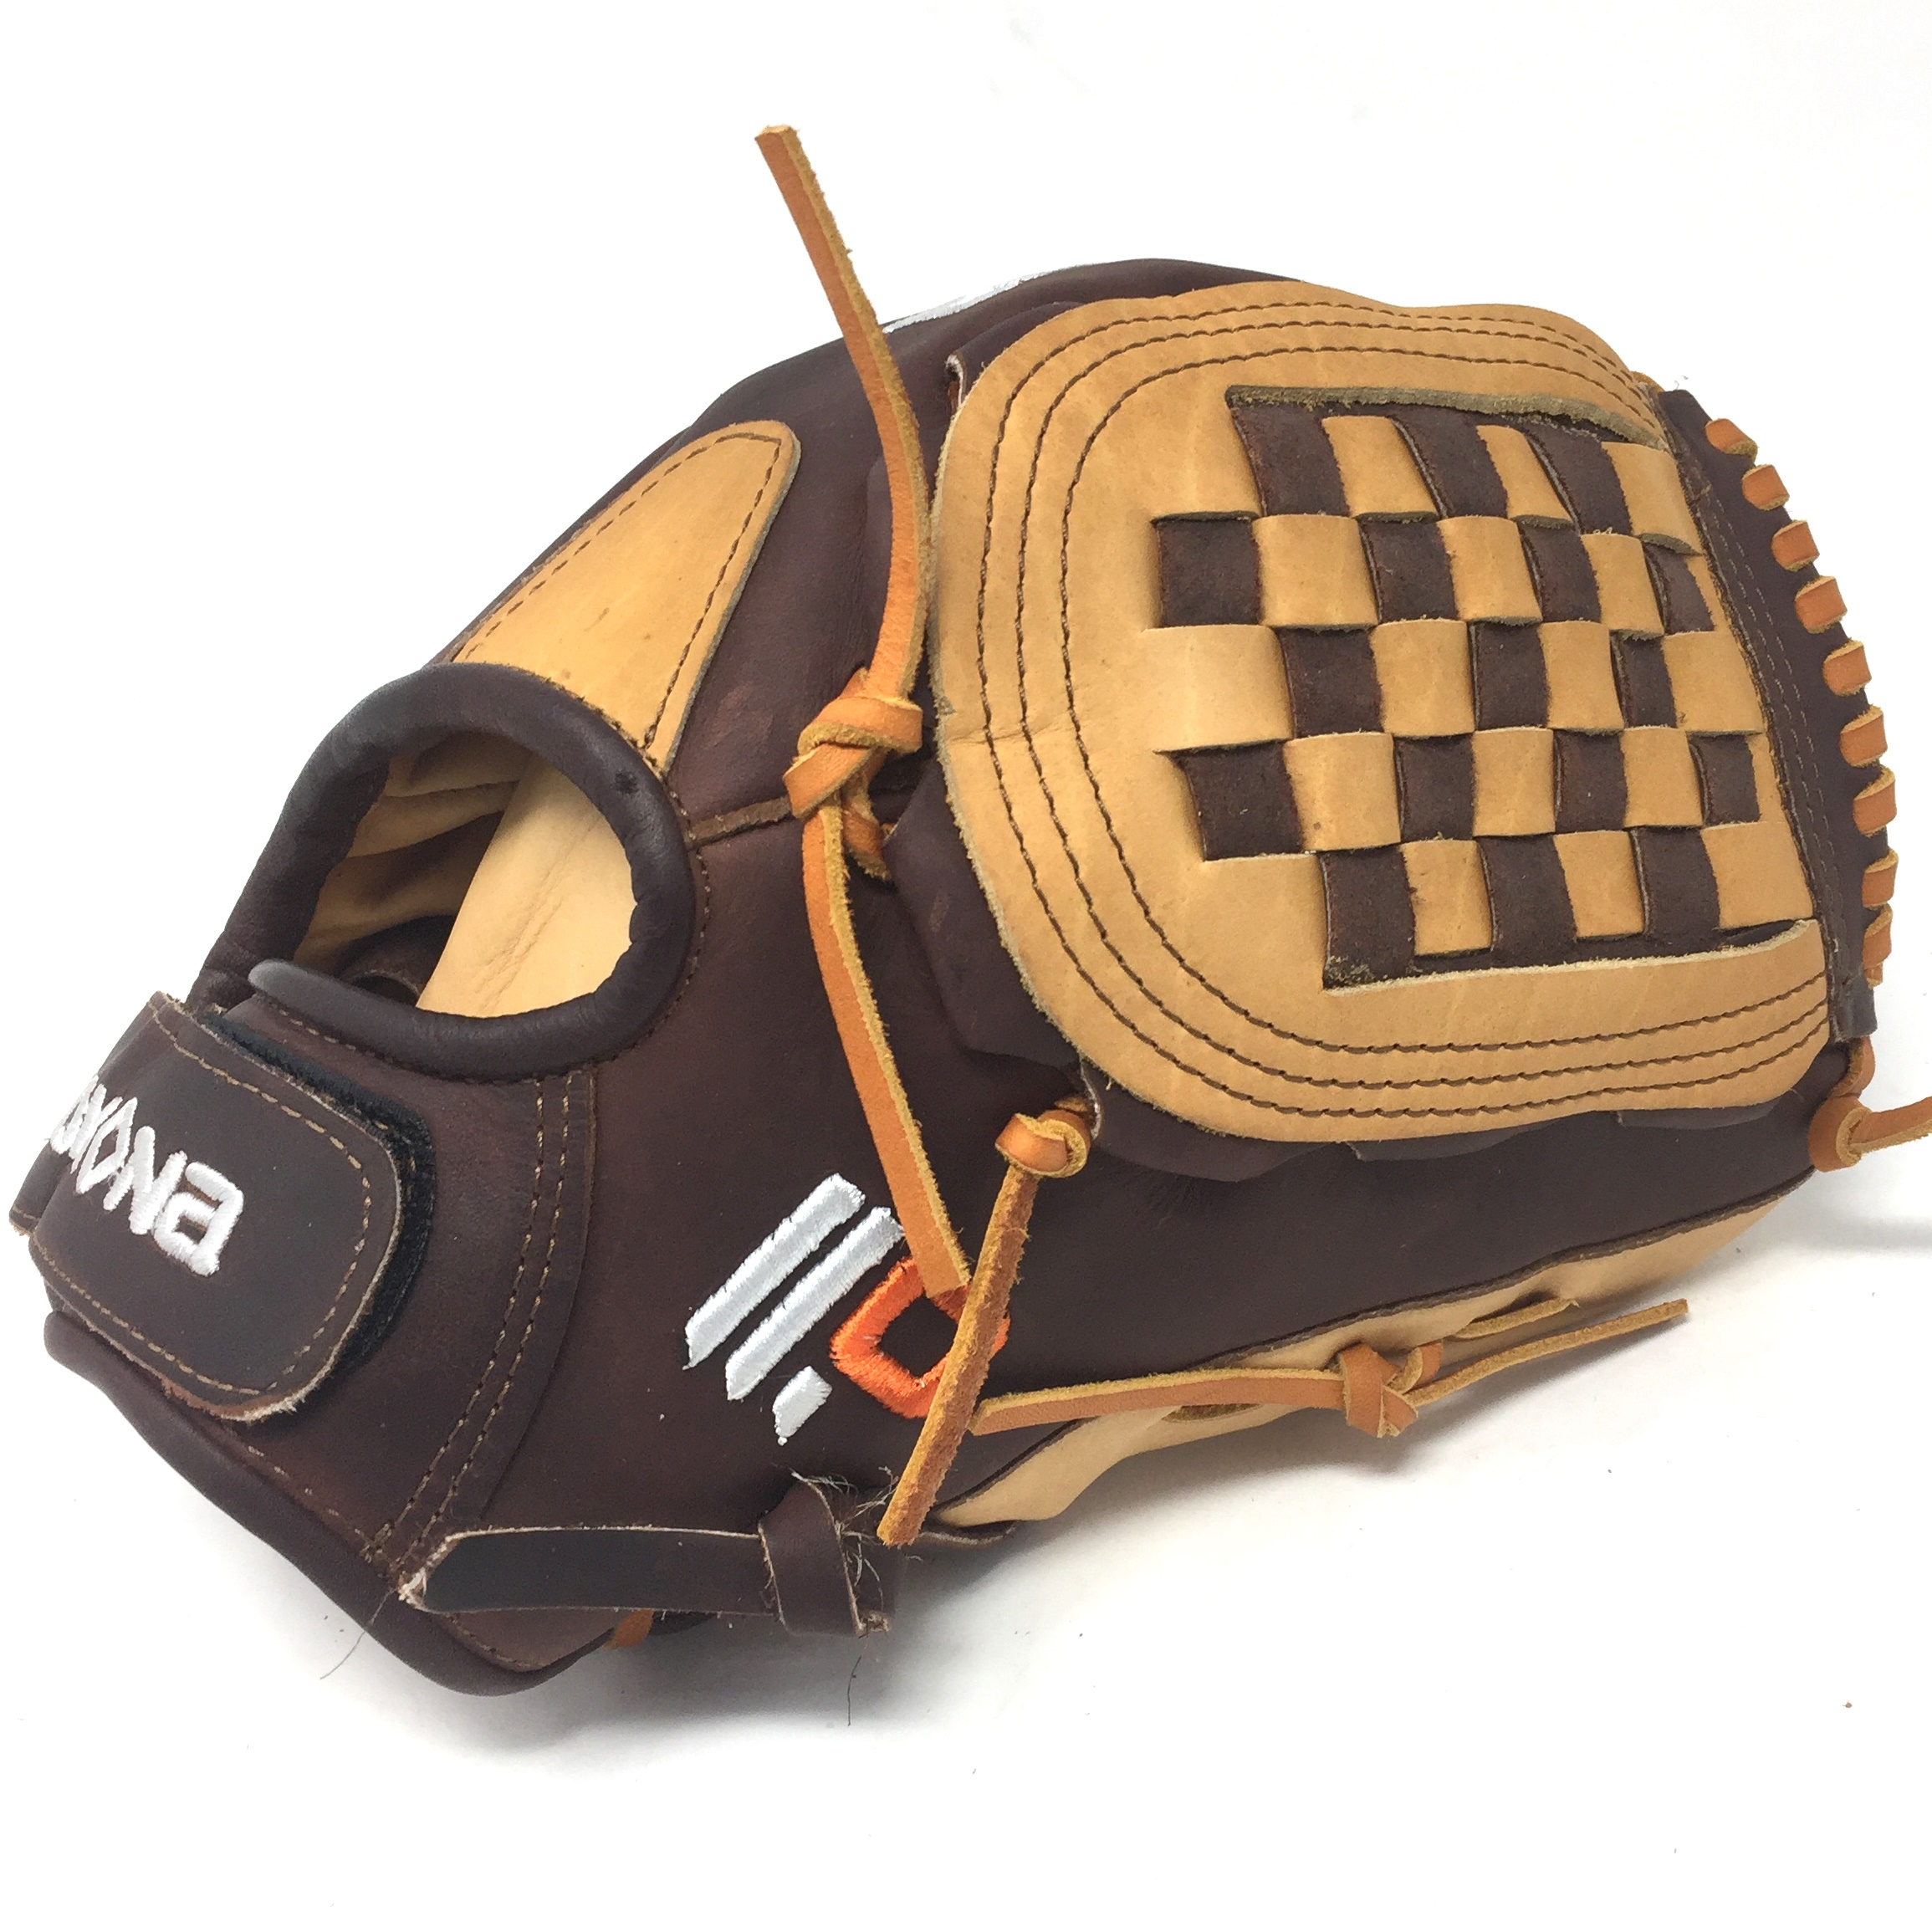 nokona-alpha-tan-supersoft-americankip-fastpitch-softball-glove-12-5-right-hand-throw S-V1250C-RightHandThrow Nokona 808808899266 The Alpha Select series is built with virtually no break-in needed